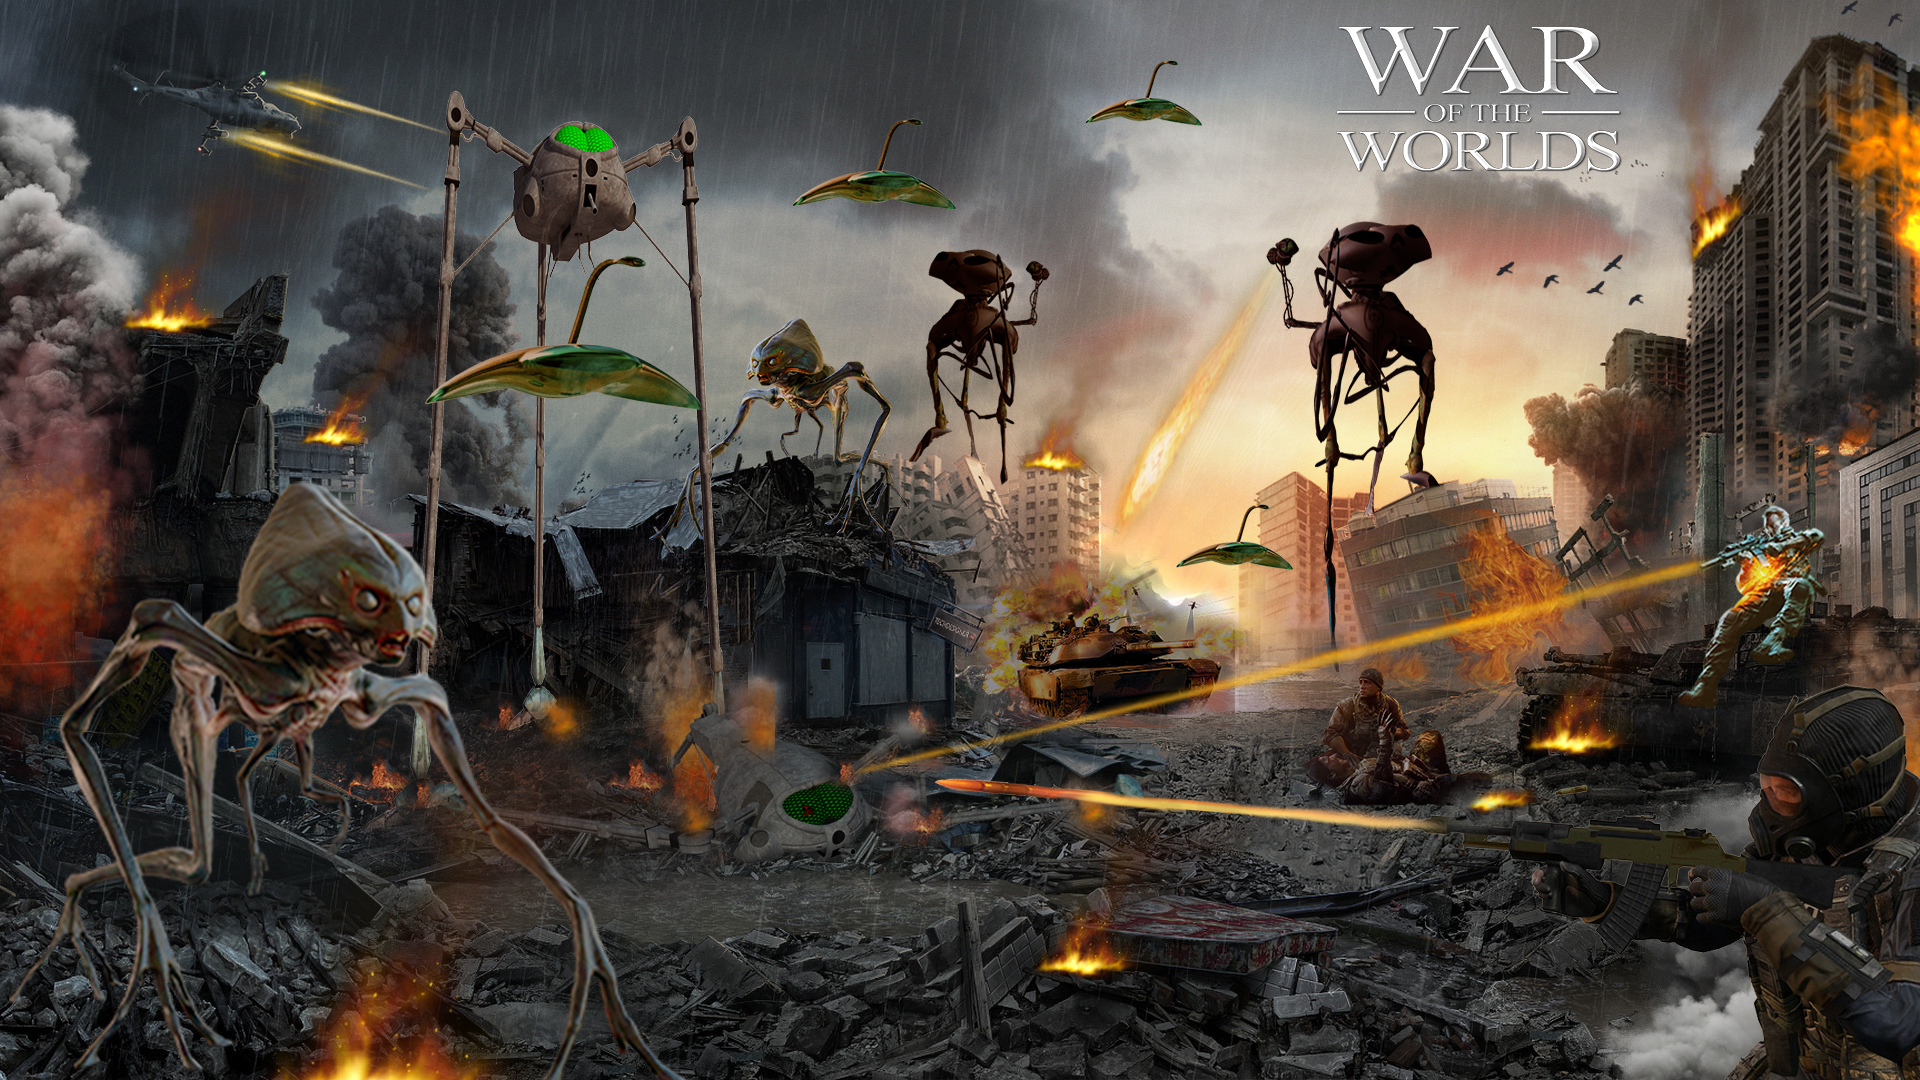 War Of The Worlds Wallpapers Posted By Sarah Thompson